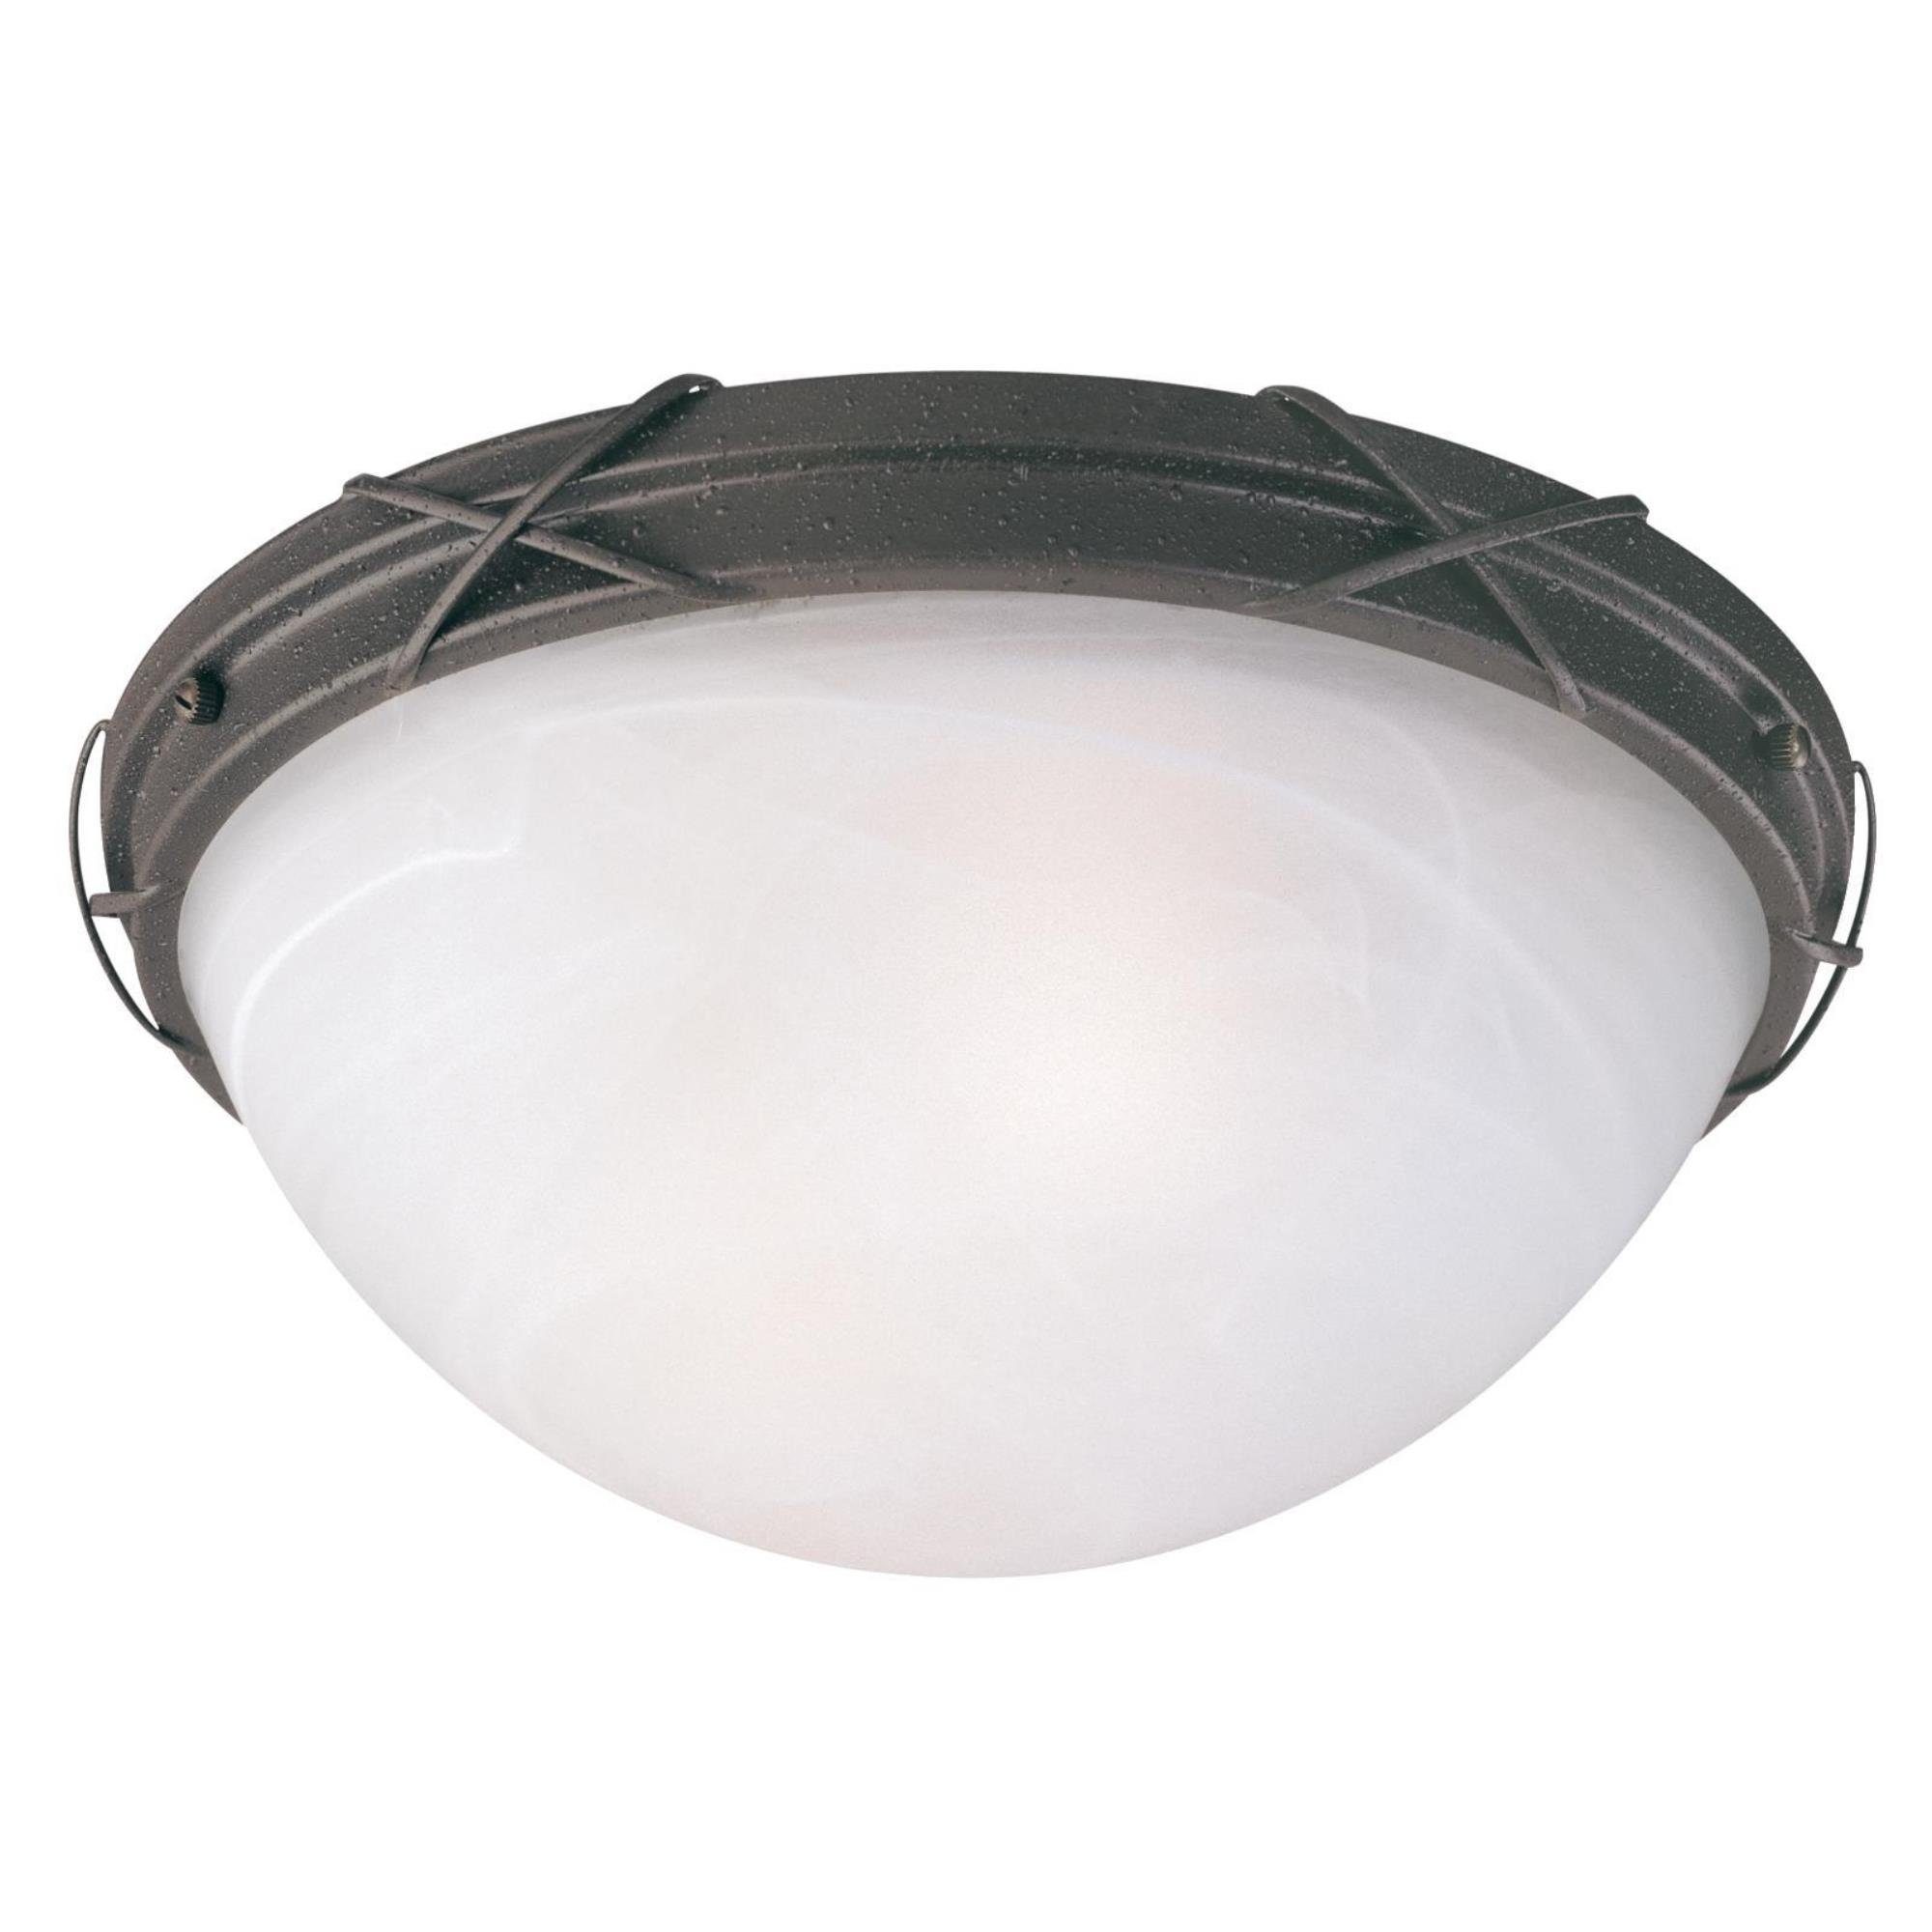 Westinghouse 6940700 Claremont Two-Light Exterior Flush-Mount Fixture Textured Rust Patina on Steel with White Alabaster Glass, Textured Rust Patina on Steel with White Alabaster Glass